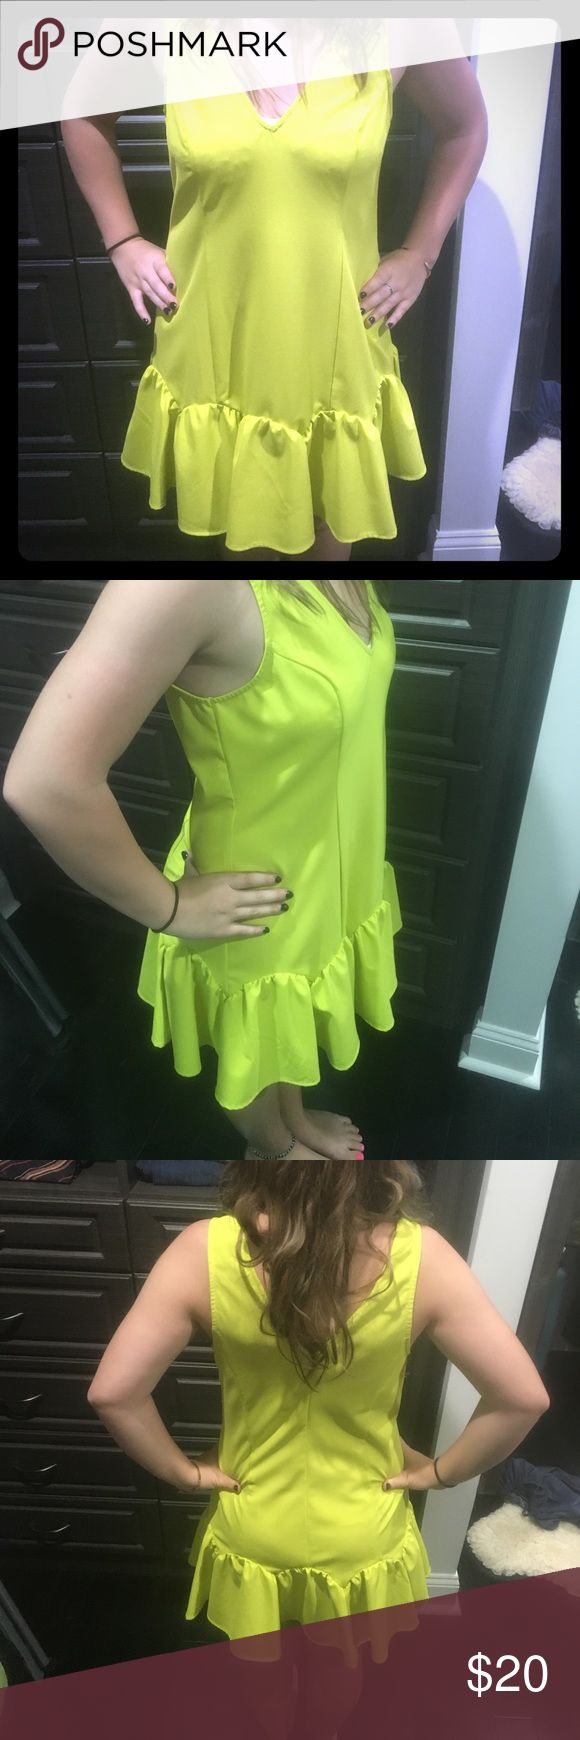 Lime green sundress Mustard seed dress, bought at a boutique , like brand new, great for layering too Mustard Seed Dresses Mini